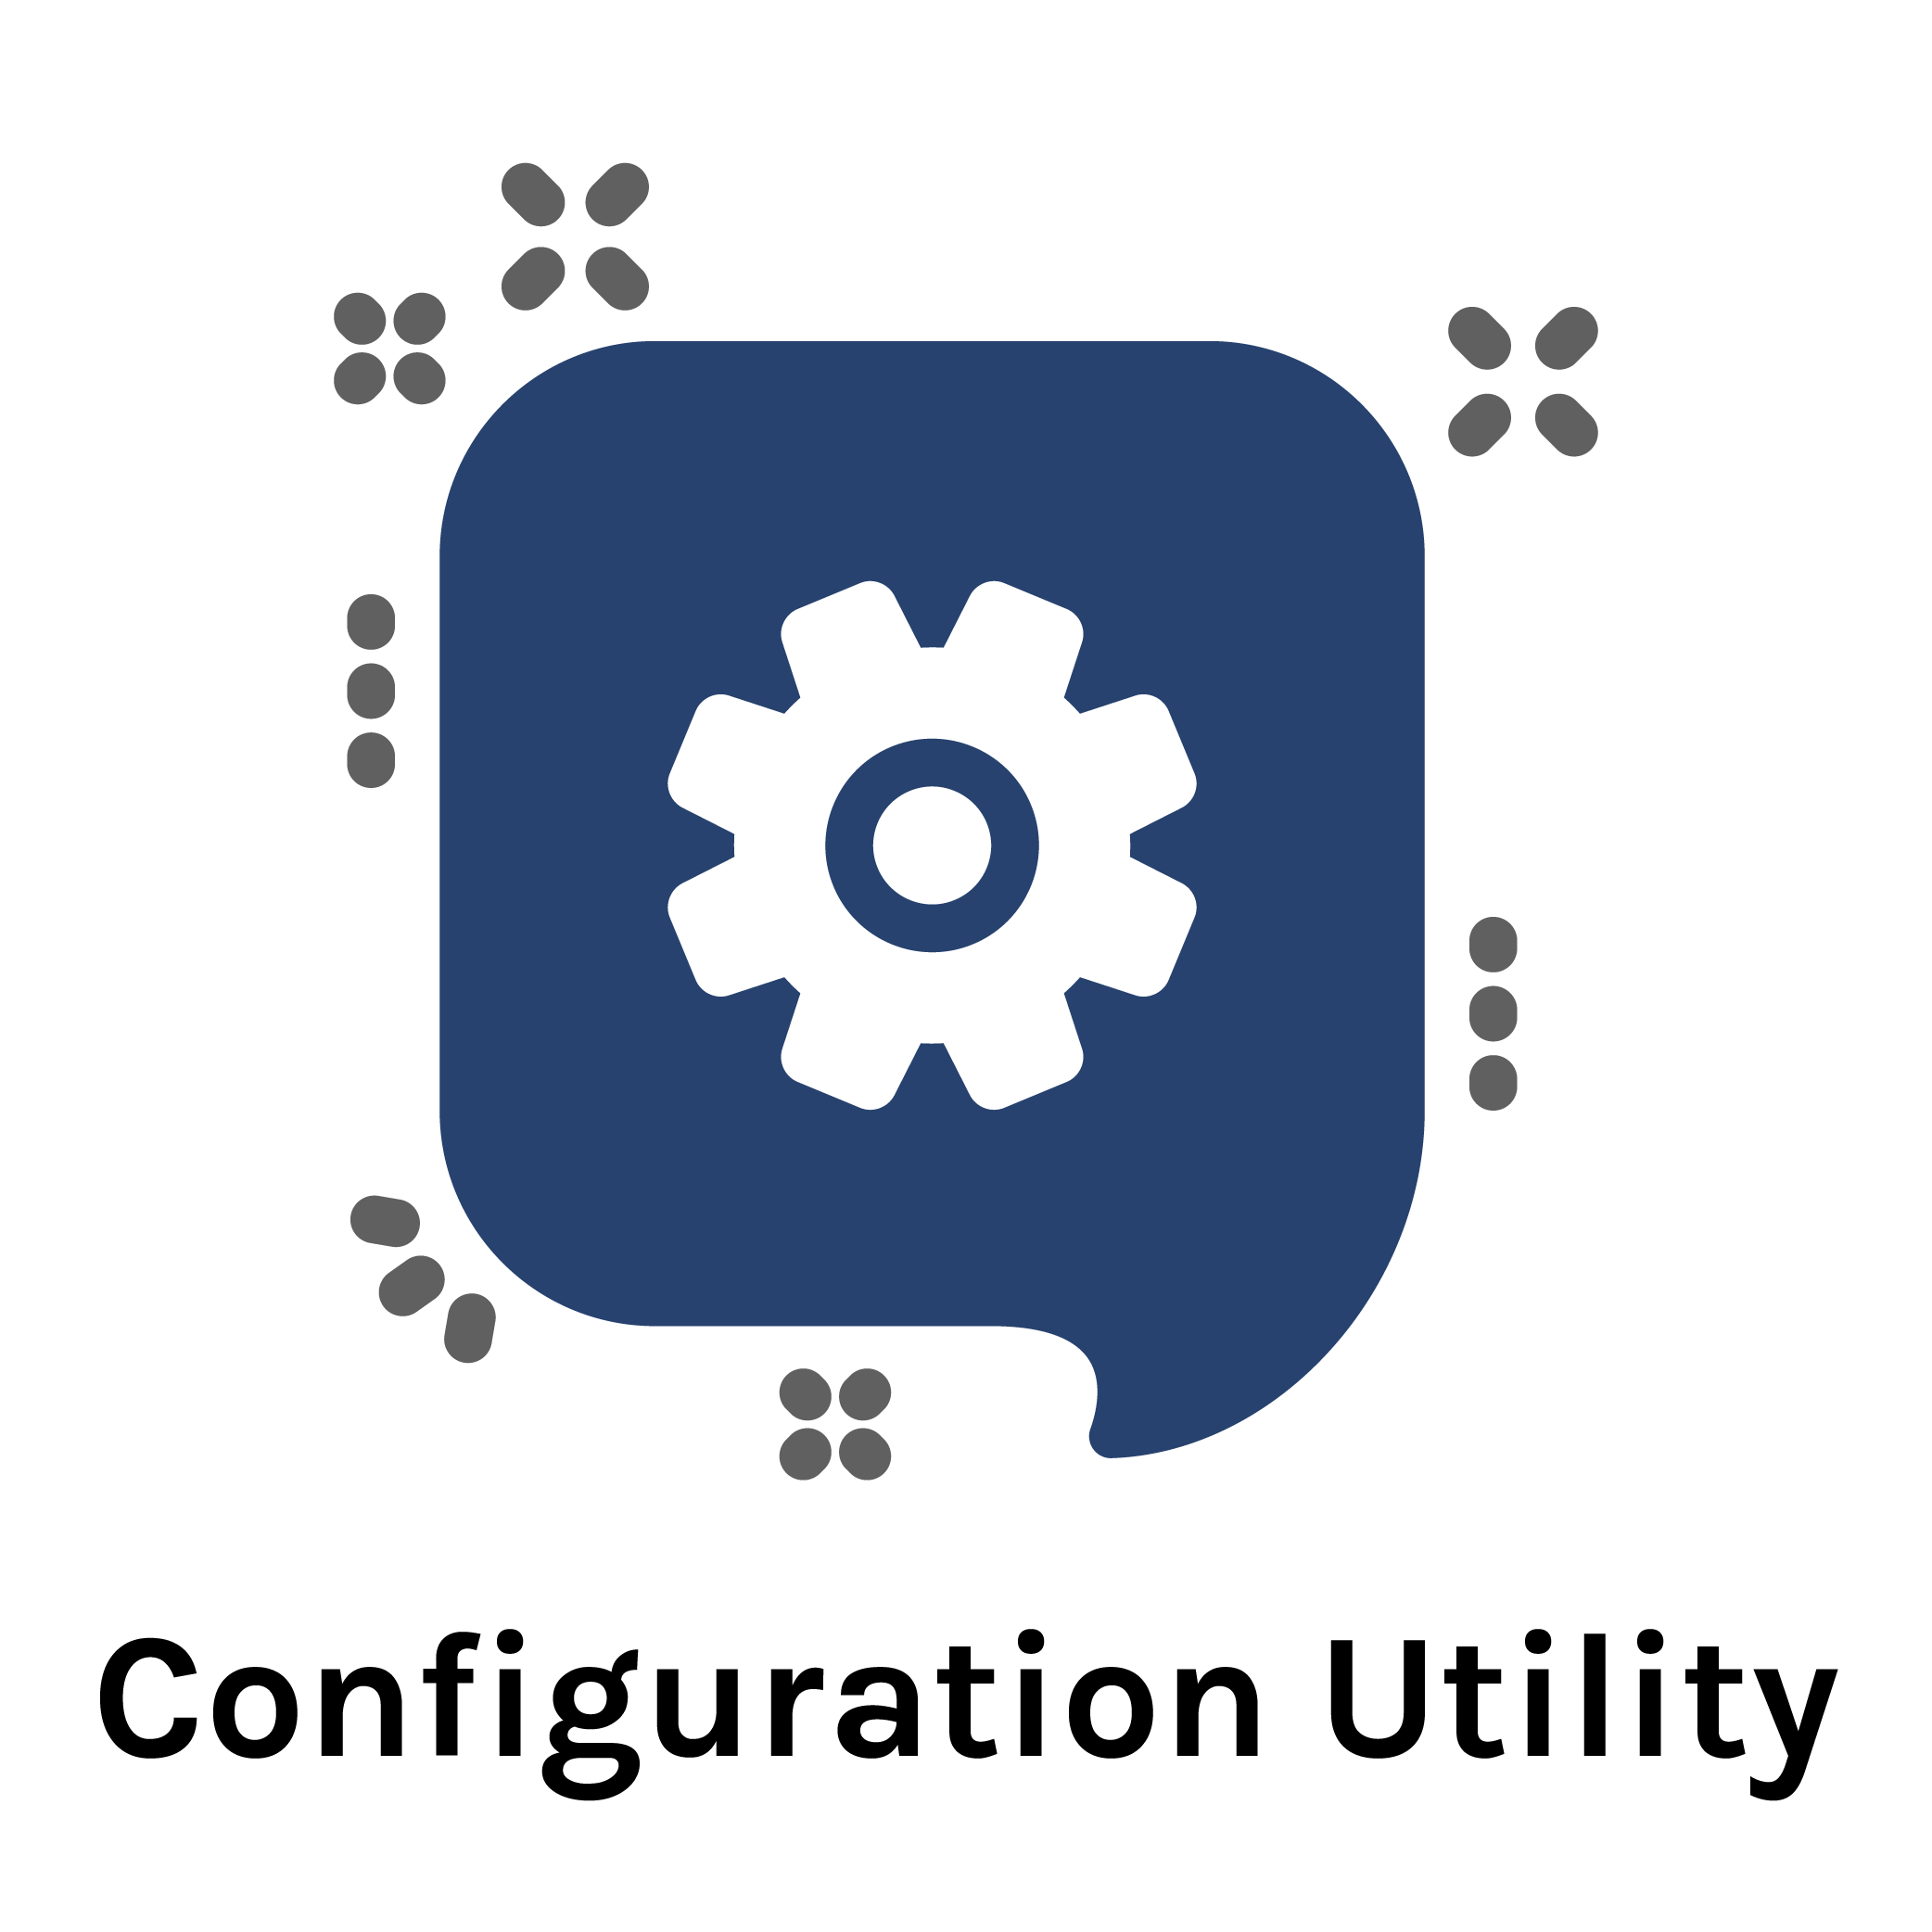 new-website-icons-2021-configurationutility.png